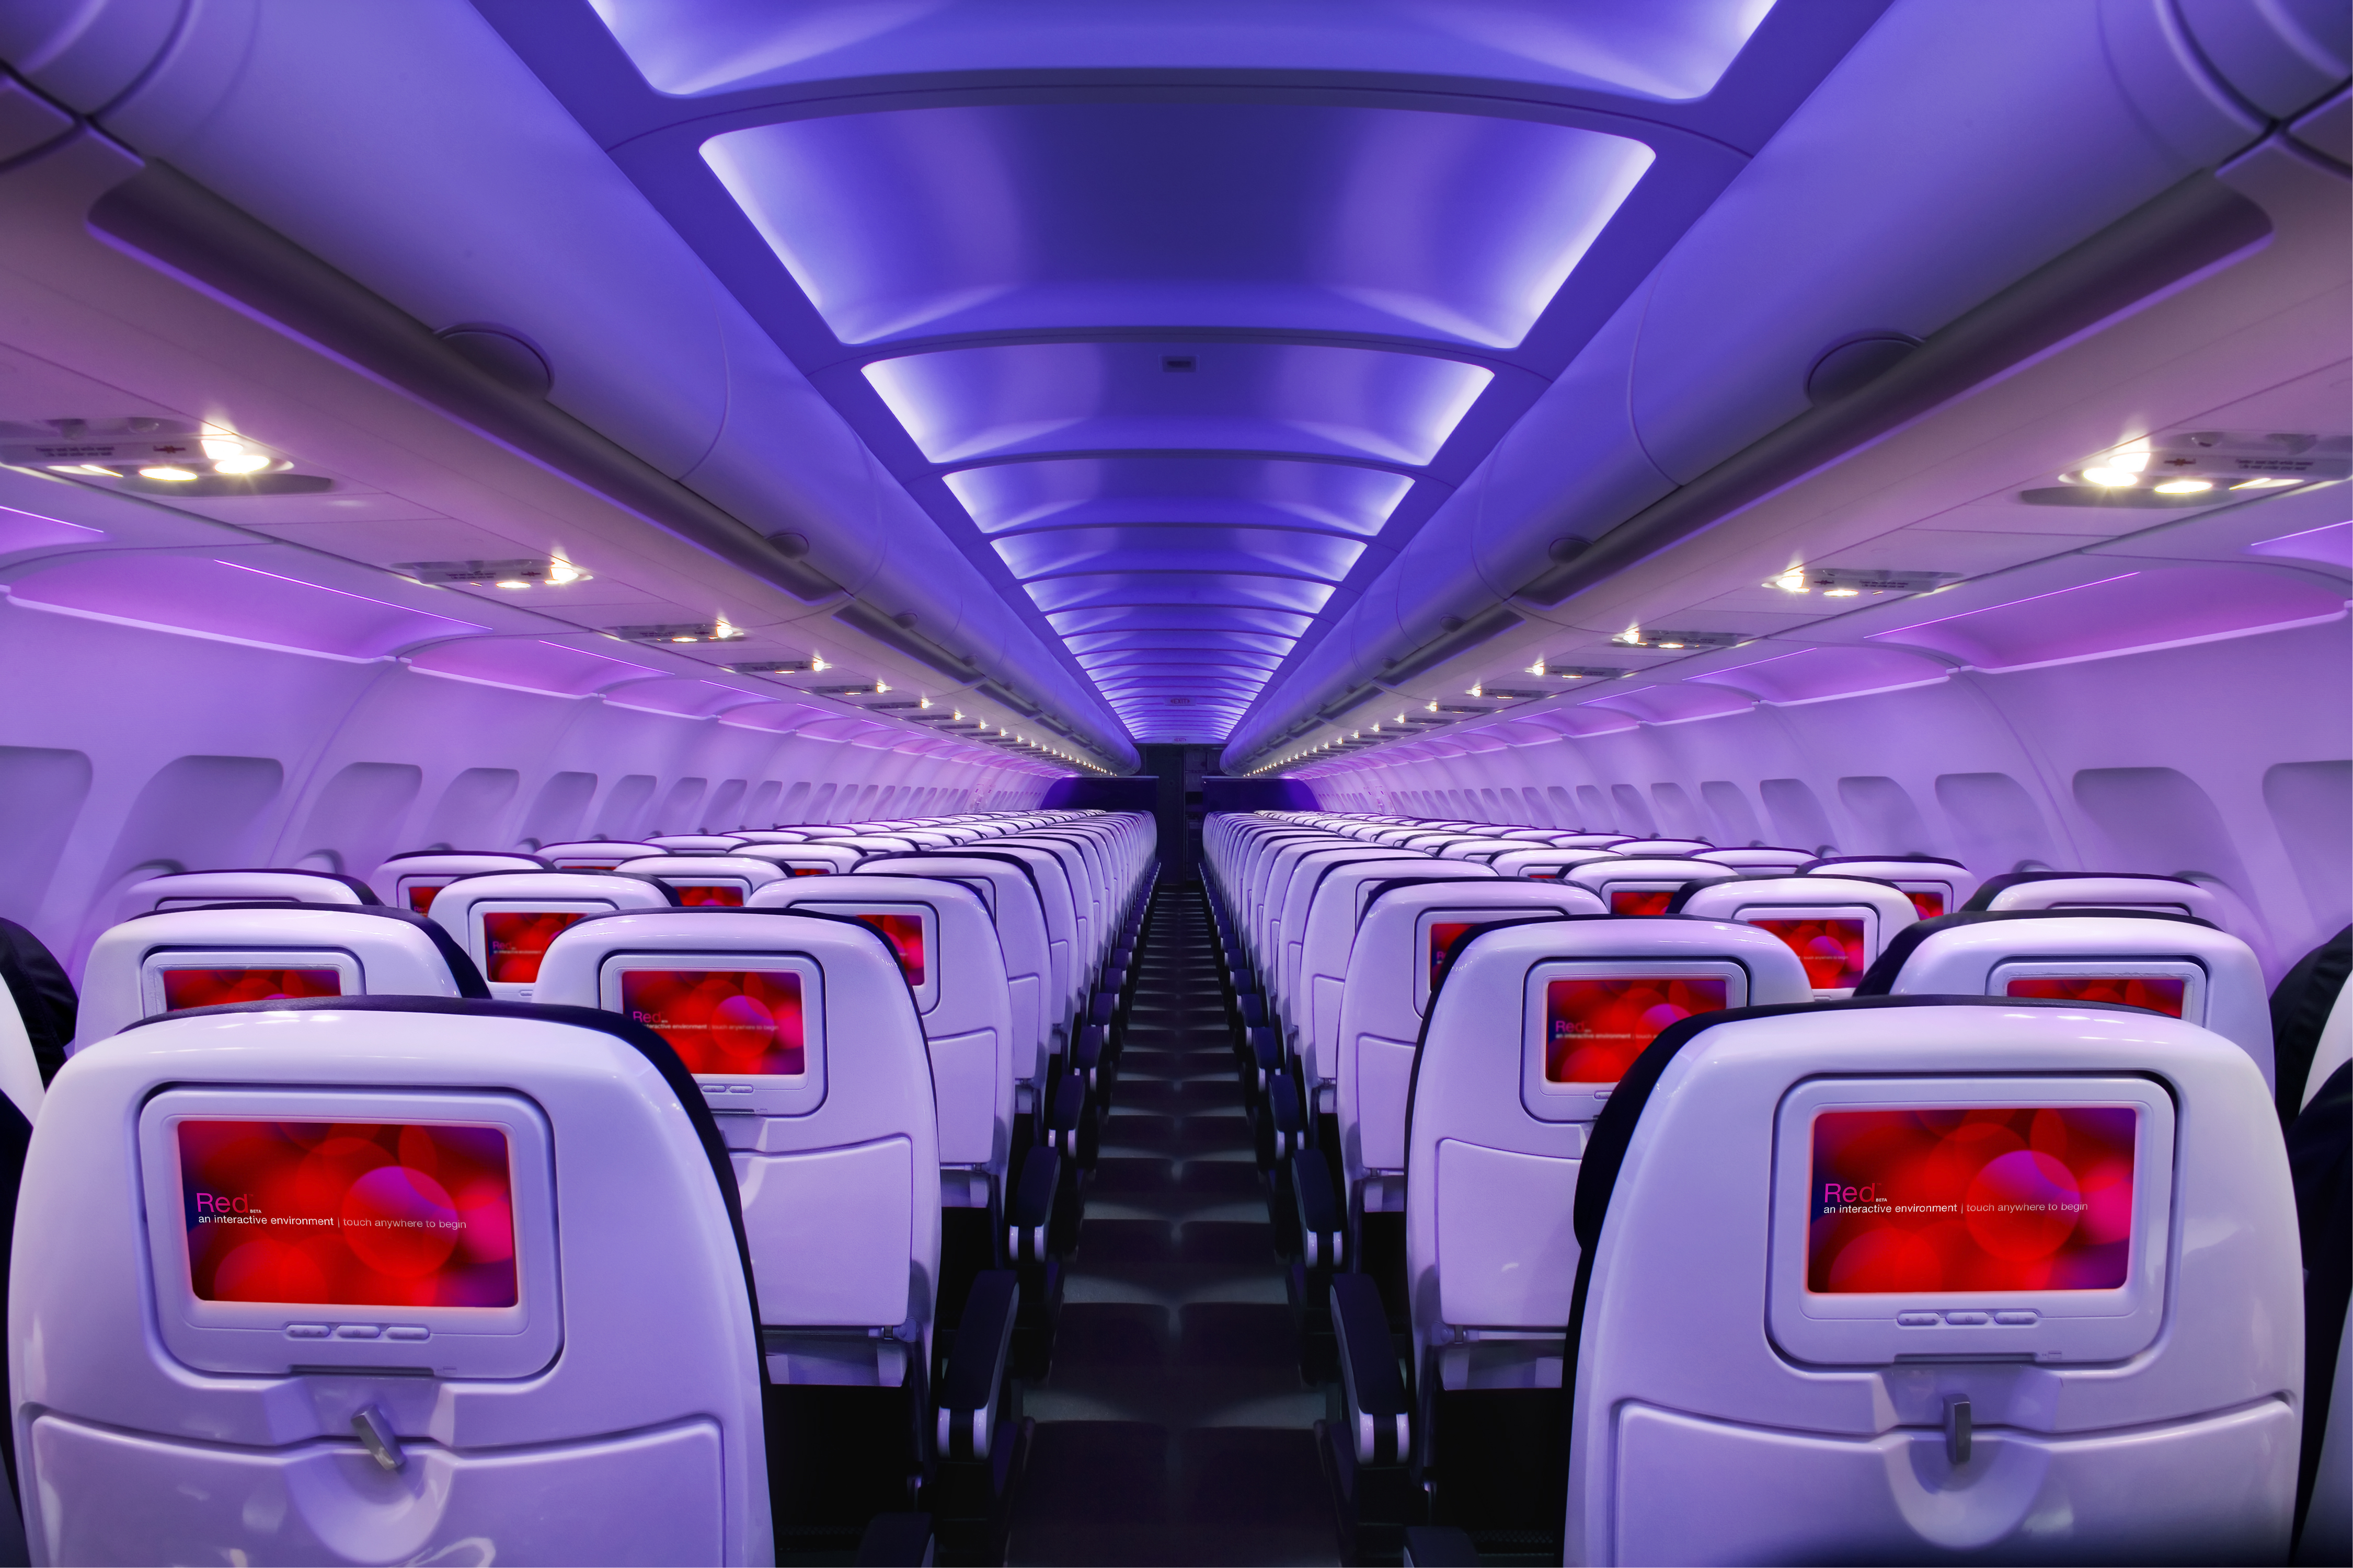 Virgin America Ranked Number One Airline in the US